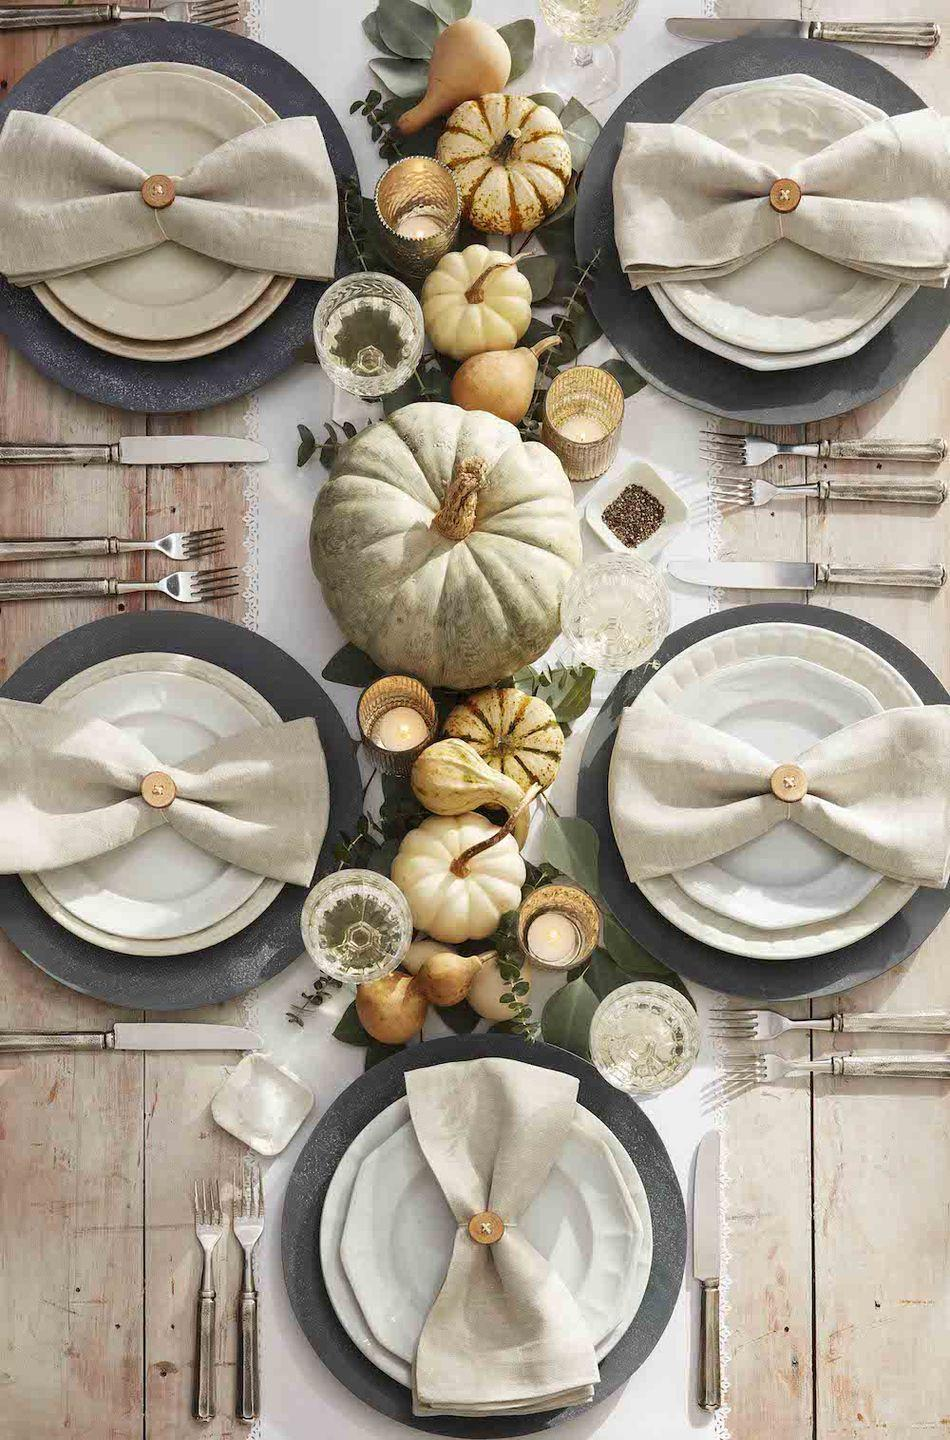 """<p>If bright orange and black isn't your favorite color combo, invoke the spirit of Halloween with whitewash painted pumpkins and a mix of neutral mini pumpkins and gourds.</p><p><strong><a class=""""link rapid-noclick-resp"""" href=""""https://www.amazon.com/YOFIT-Artificial-Decoration-Thanksgiving-Decorations/dp/B07VJBJFYK/?tag=syn-yahoo-20&ascsubtag=%5Bartid%7C10050.g.3739%5Bsrc%7Cyahoo-us"""" rel=""""nofollow noopener"""" target=""""_blank"""" data-ylk=""""slk:SHOP MINI WHITE PUMPKINS"""">SHOP MINI WHITE PUMPKINS</a></strong></p>"""